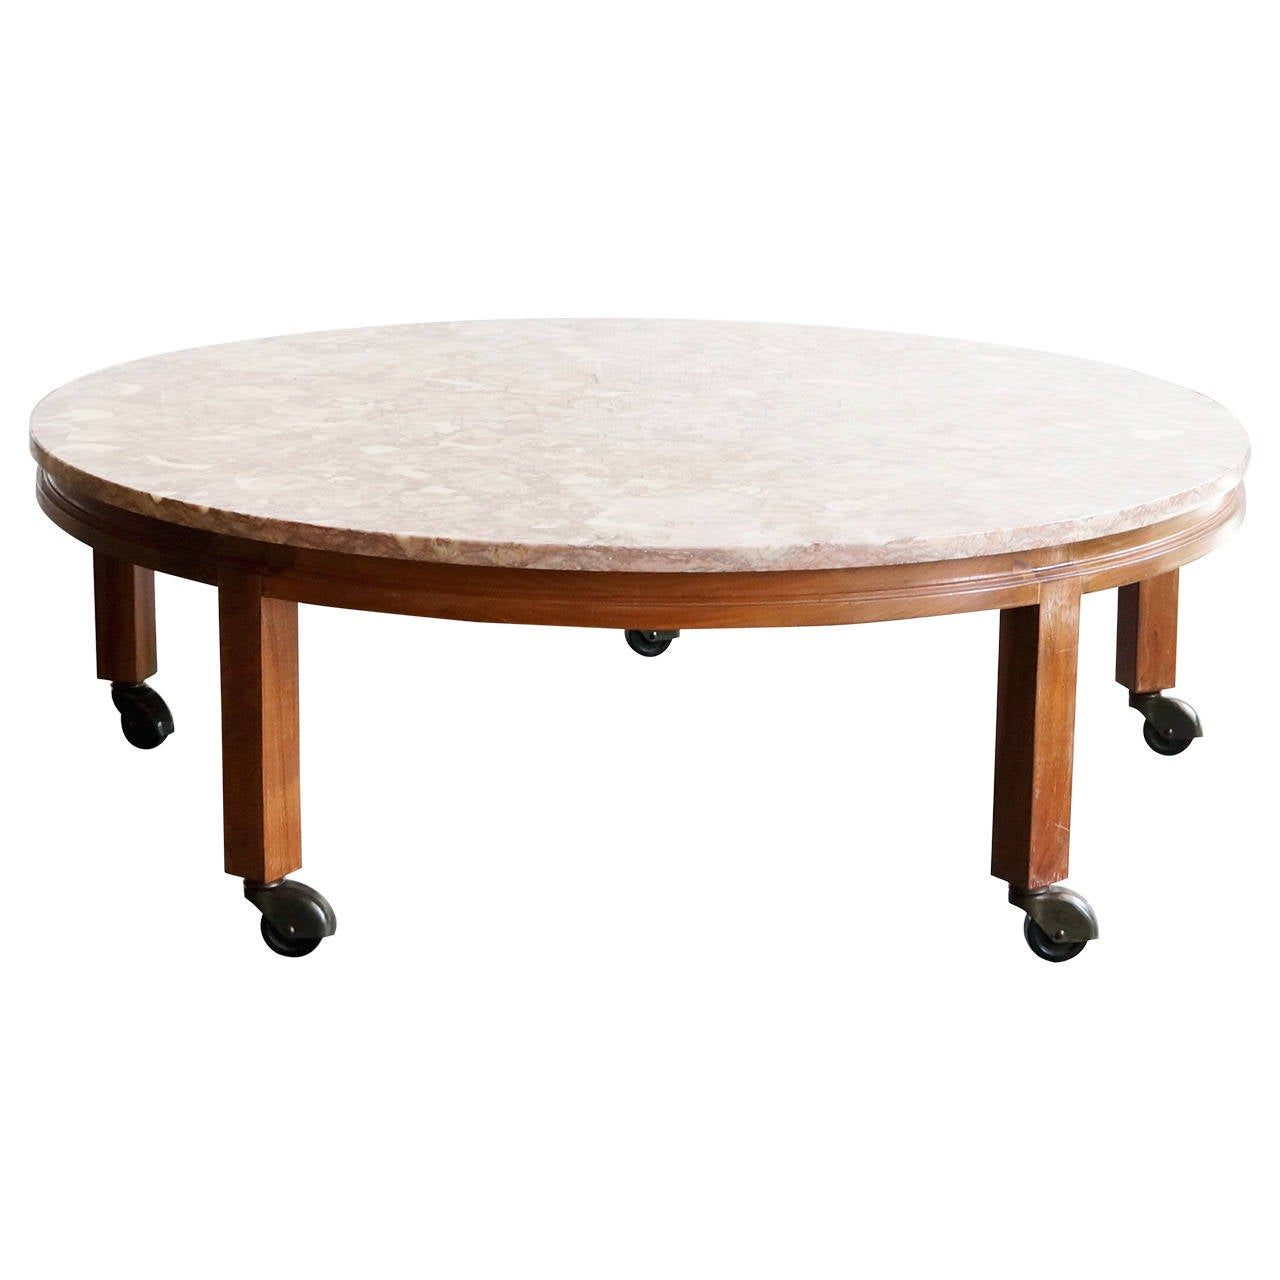 Vintage pink marble and walnut round coffee table at 1stdibs for Marble and walnut coffee table